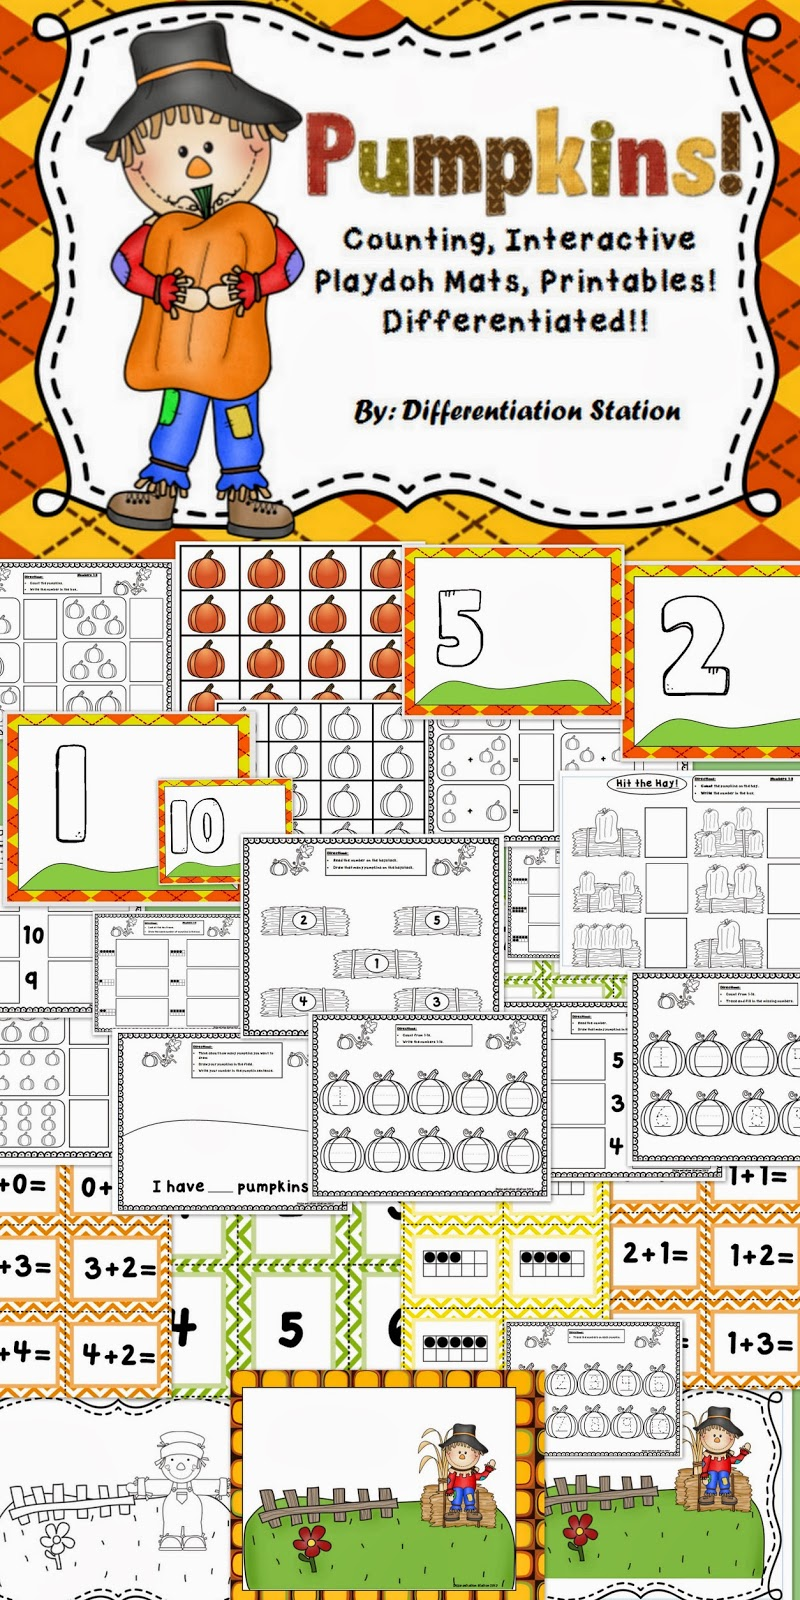 http://www.teacherspayteachers.com/Product/Pumpkins-Interactive-PlayDough-Mats-Counting-Centers-and-Games-Printables-898700